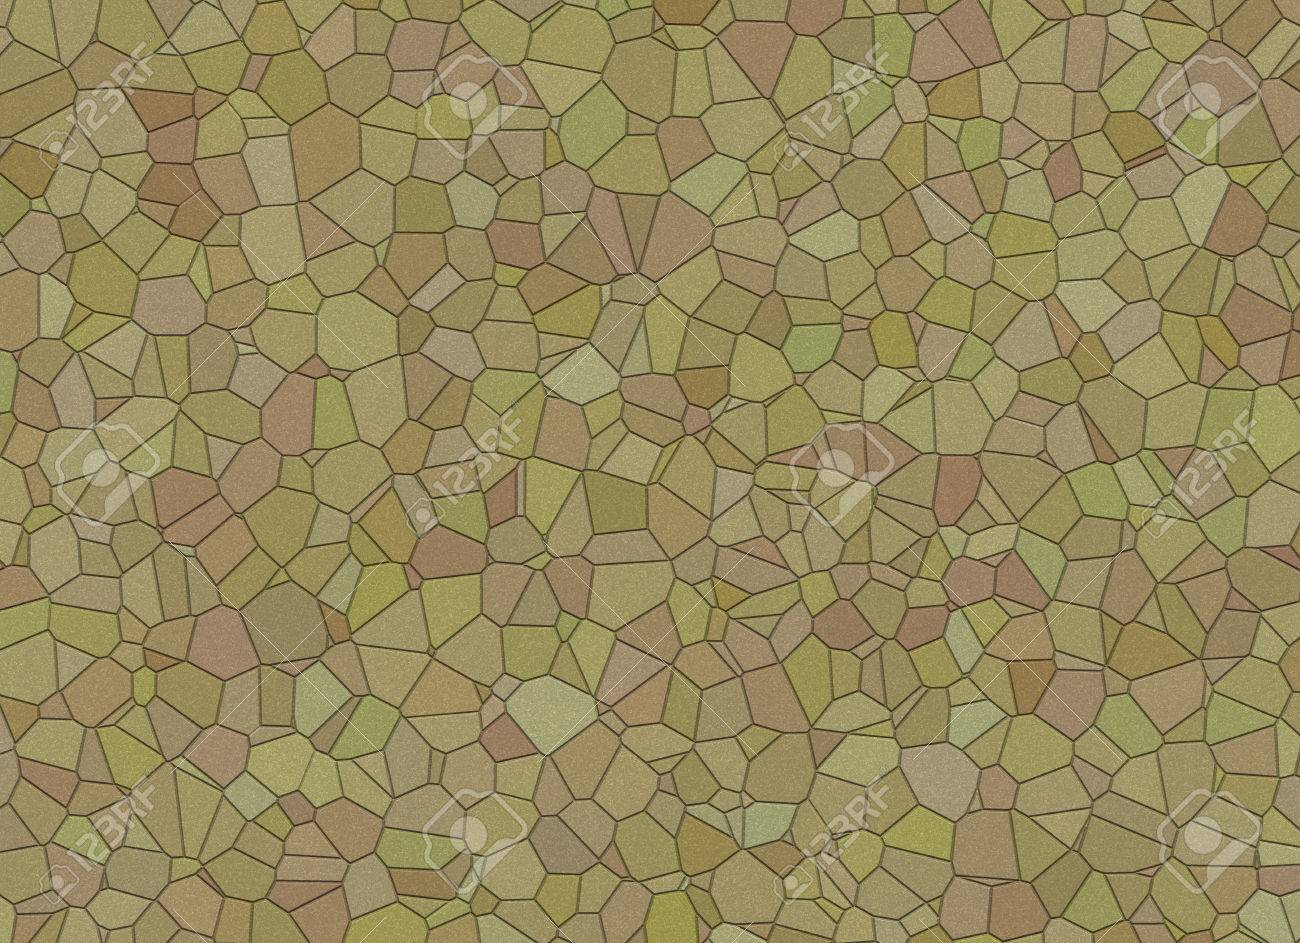 Landscape Design From Stones Mosaic Wallpapers Pattern Stock Photo